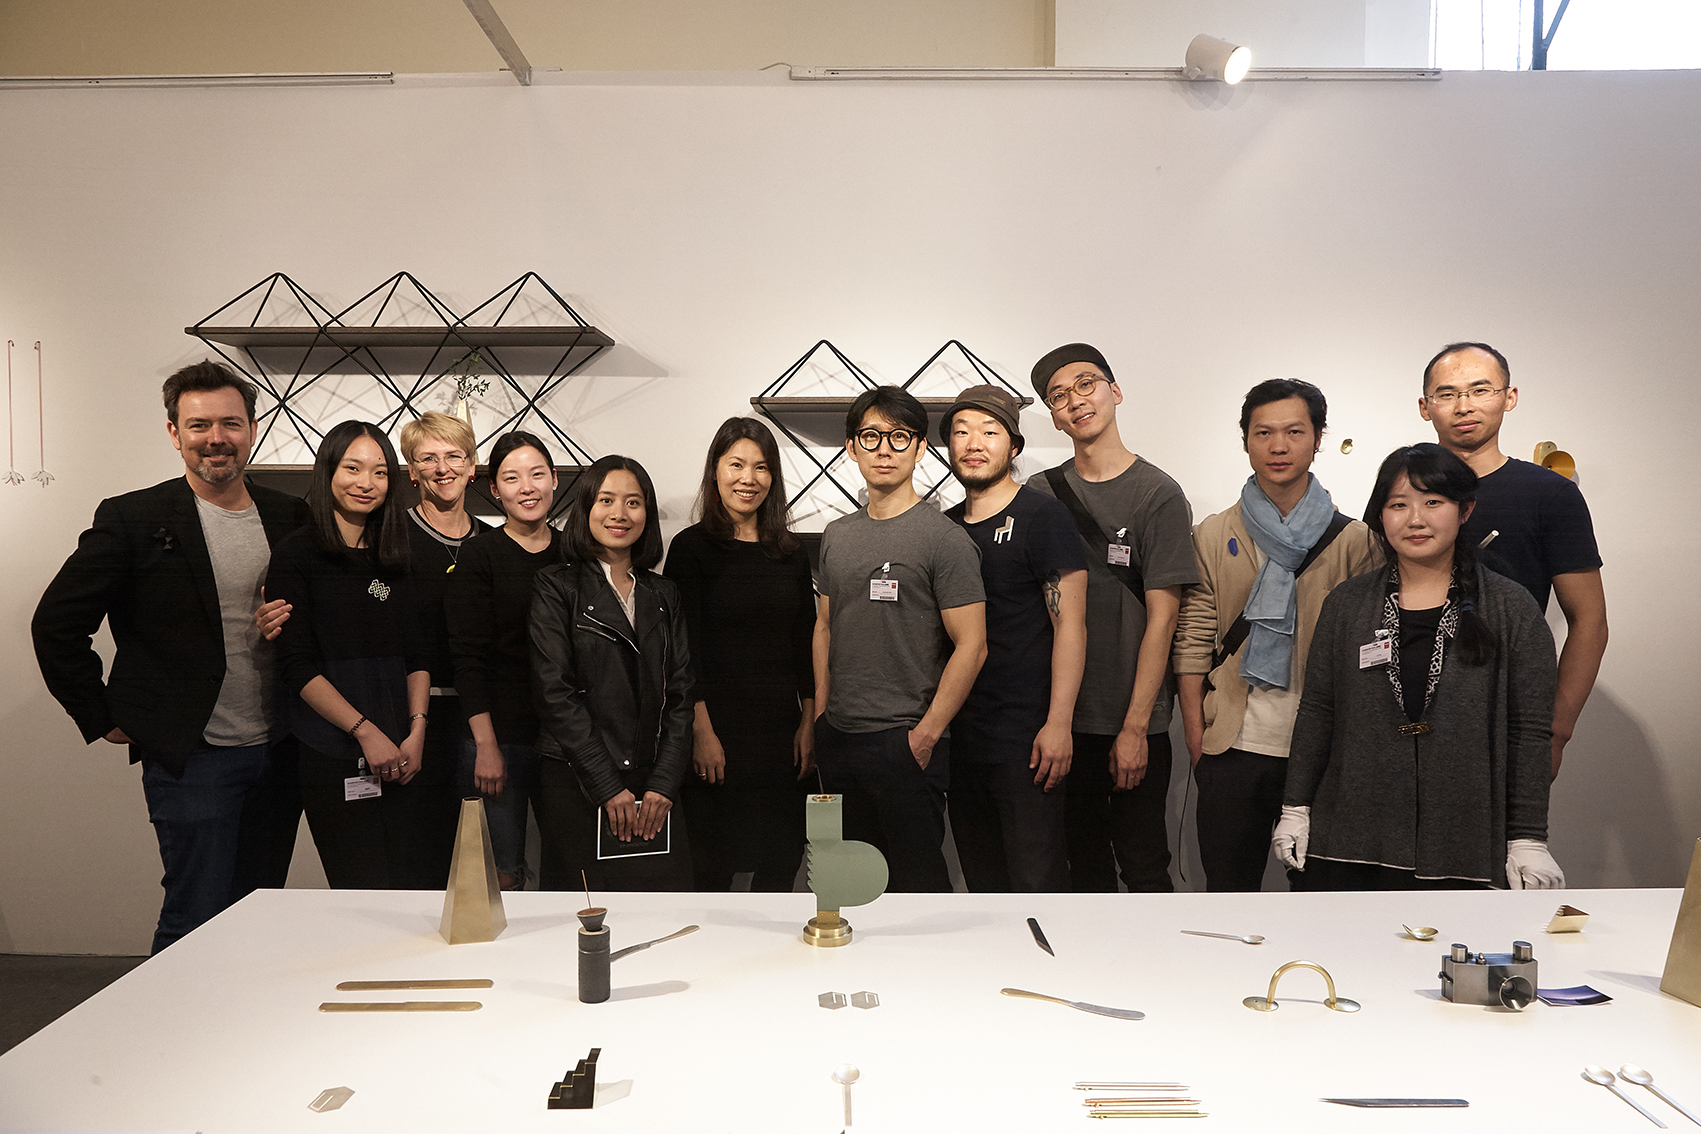 San W exhibition at  Design Shanghai 2017 , from left to right; Christian Hall, Ann Lai, Rae O'Connell,   Seonmin Hu, Lea Liao, Yiwei Wu,   Hyunseok Sim, Kenny Yong-soo Son,    Hyunsung Kim, Luo Xiao (罗骁  ), Lindsay Cheng and DC